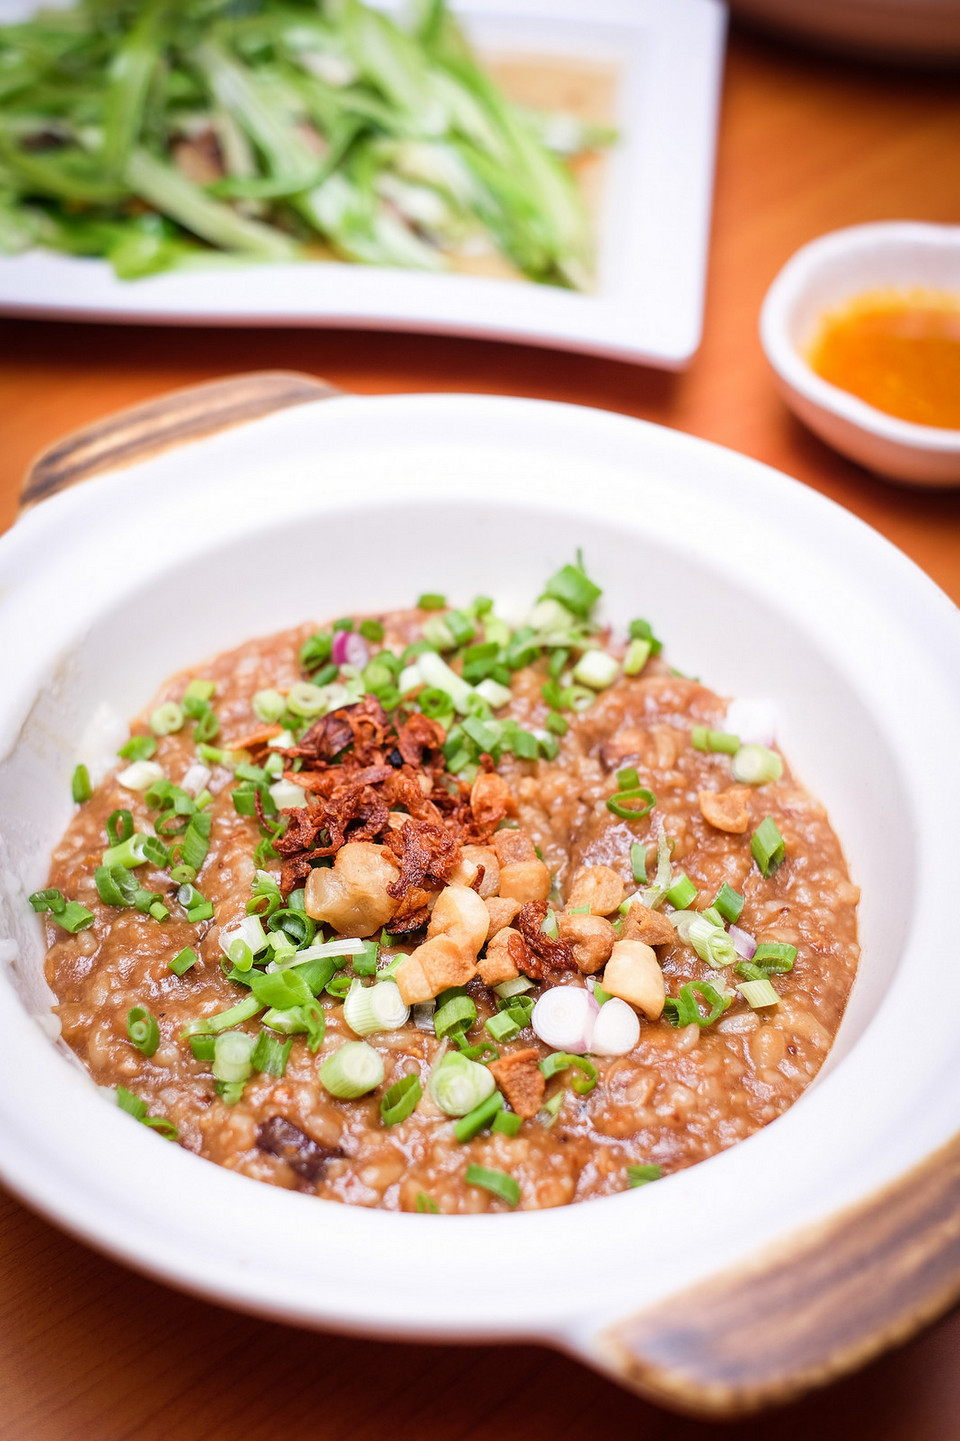 Royal J's Premium Taste fried porridge singapore